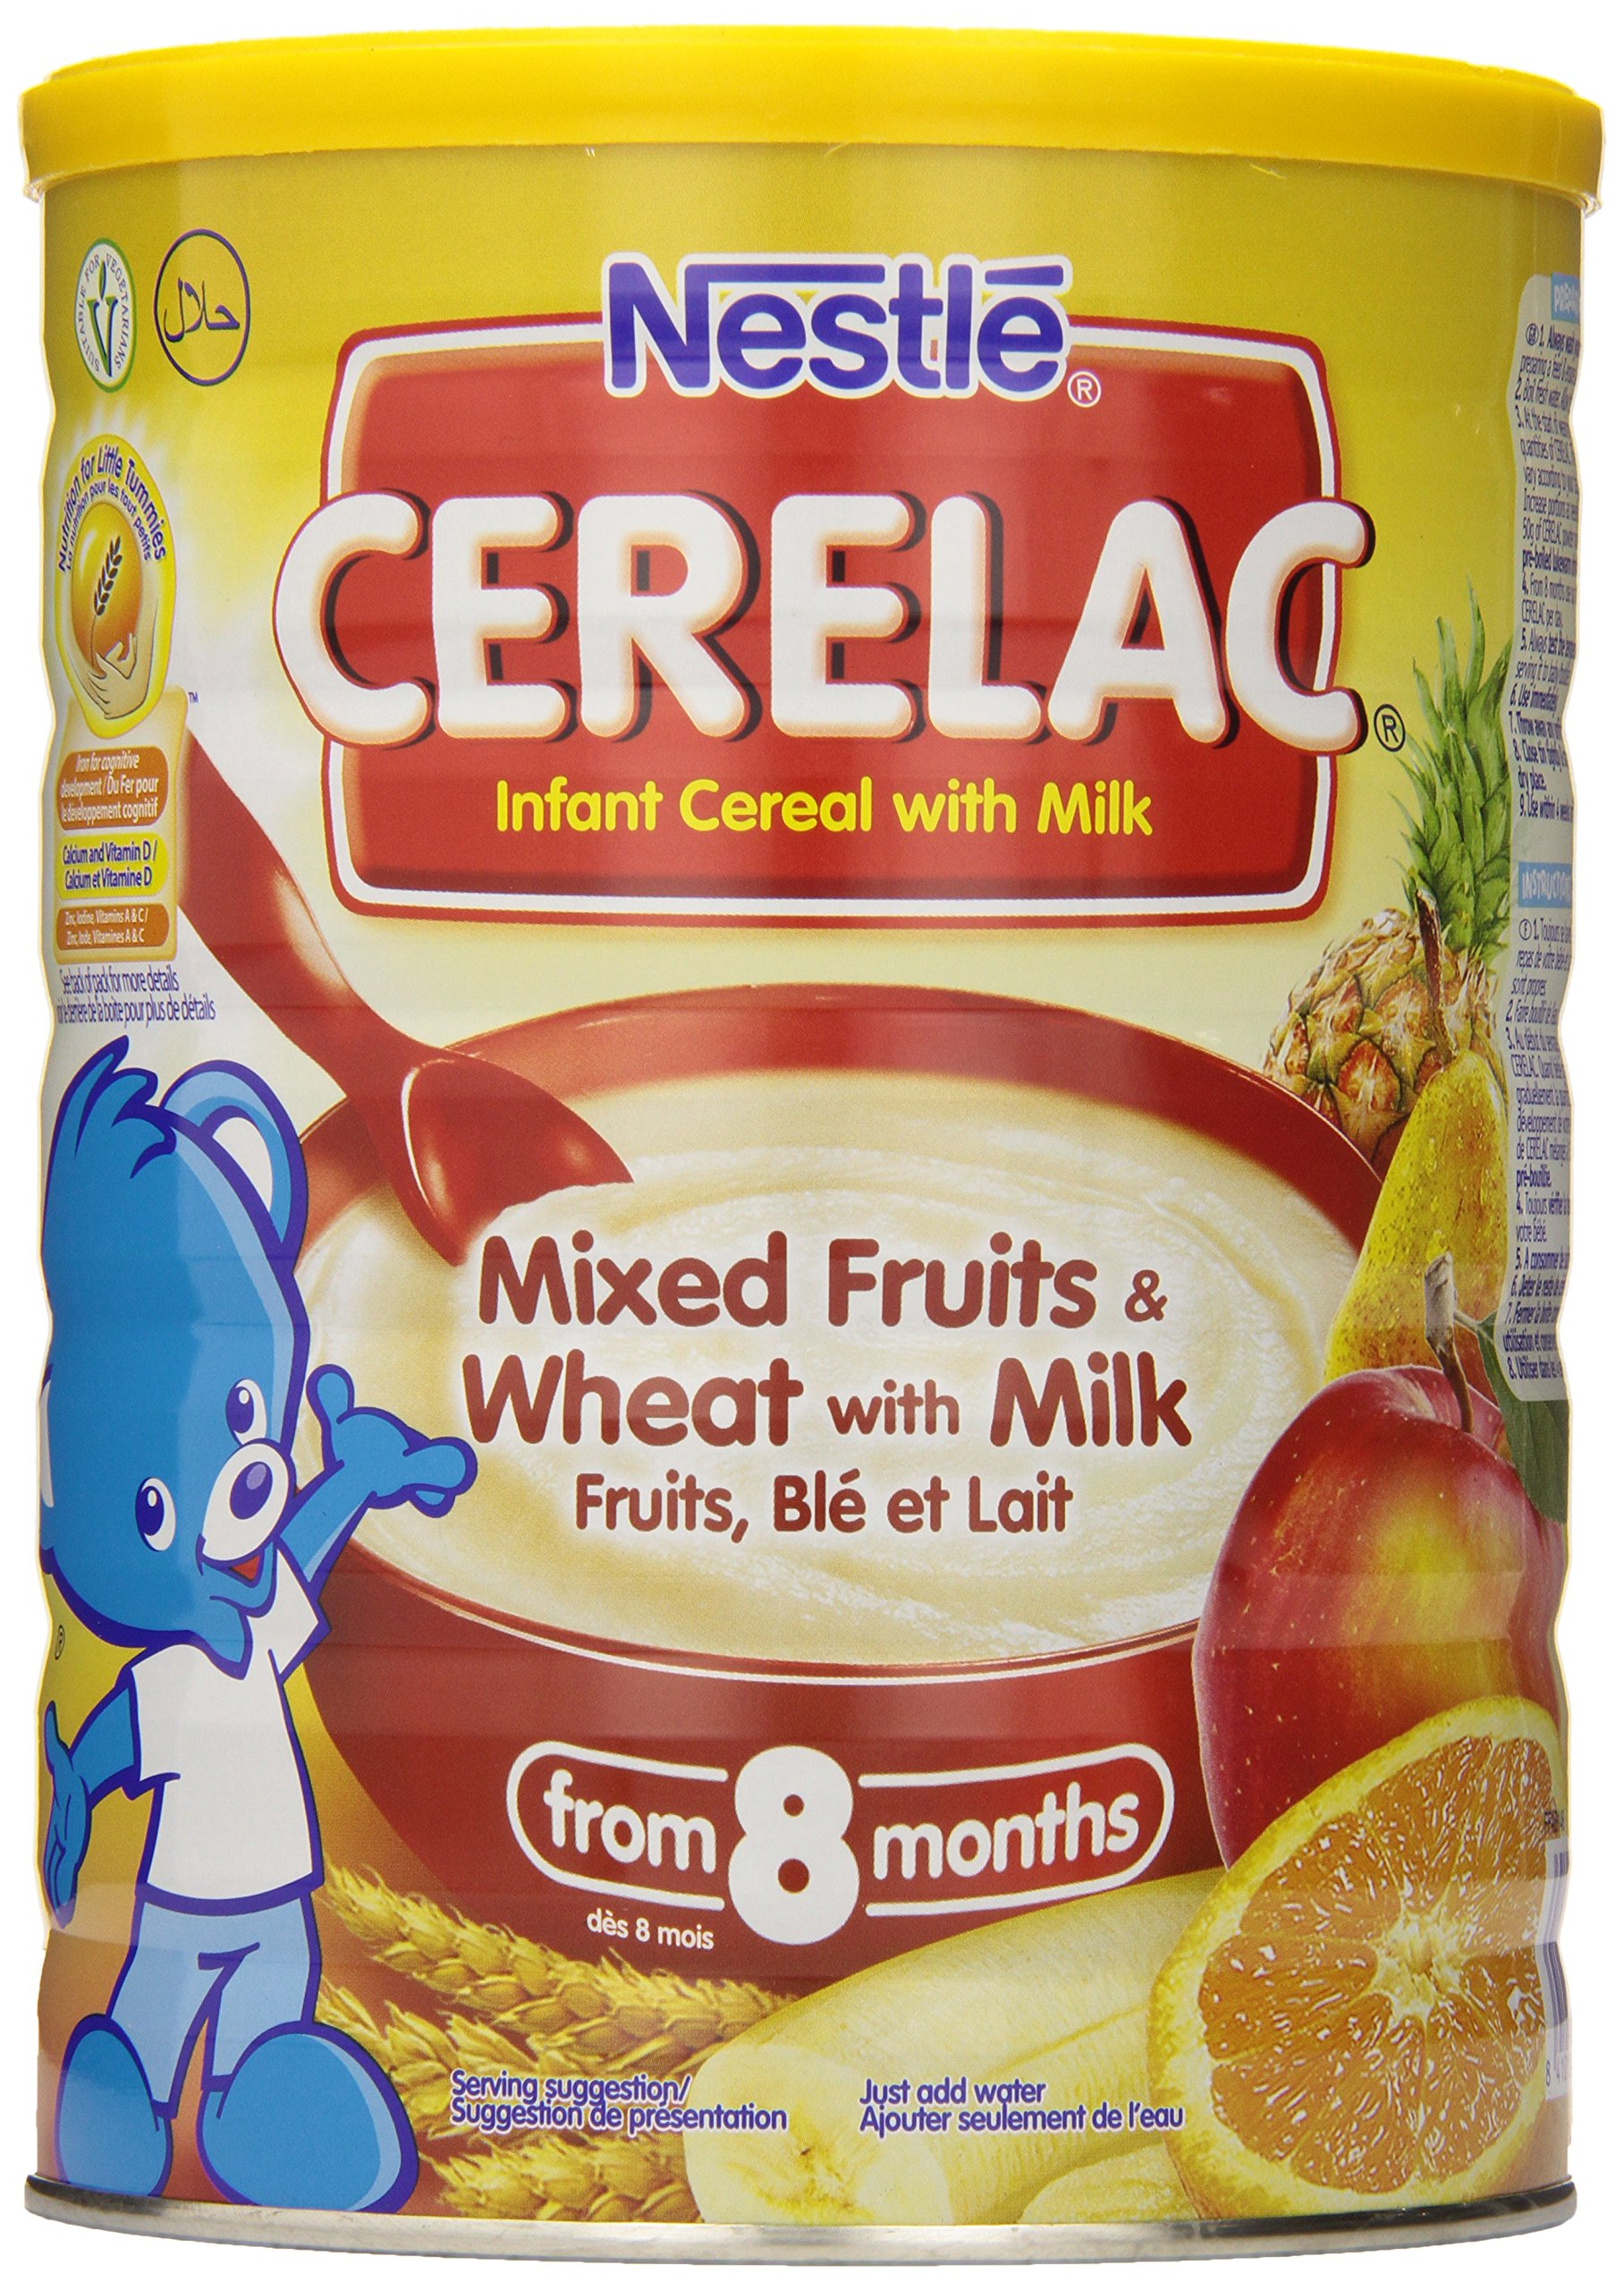 Nestle Cerelac Infant Cereal, Mixed Fruits & Wheat with Milk 1kg (35.27oz) by Nestle